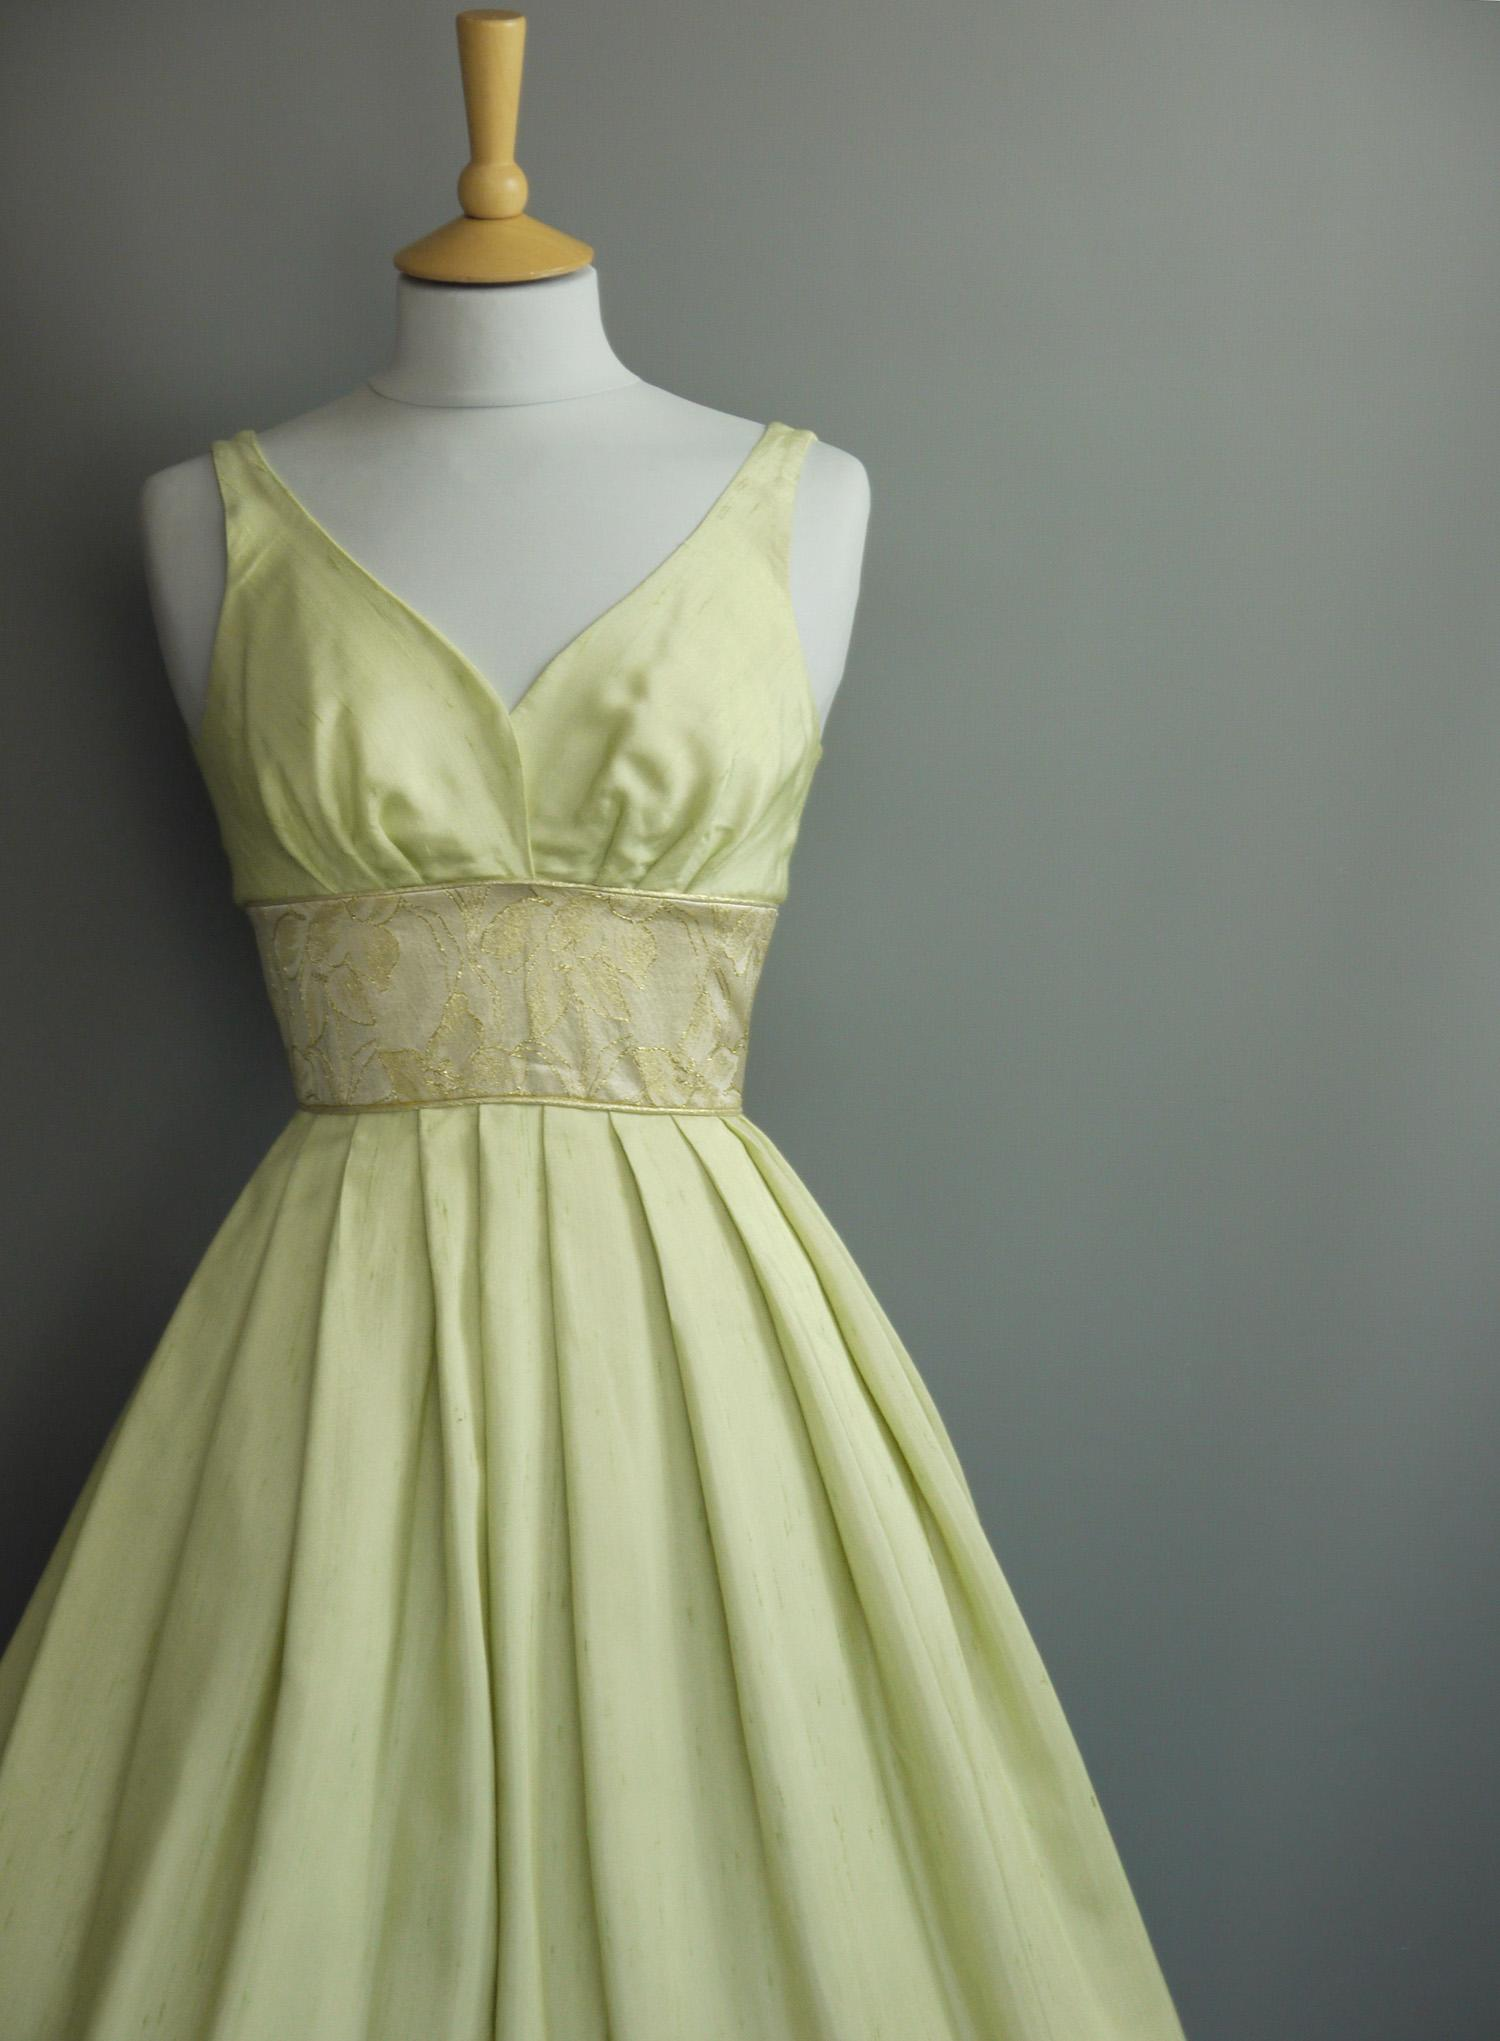 Emerald Taffeta Party Dress with Cap Sleeves and Silver Piping Made by Dig For Victory